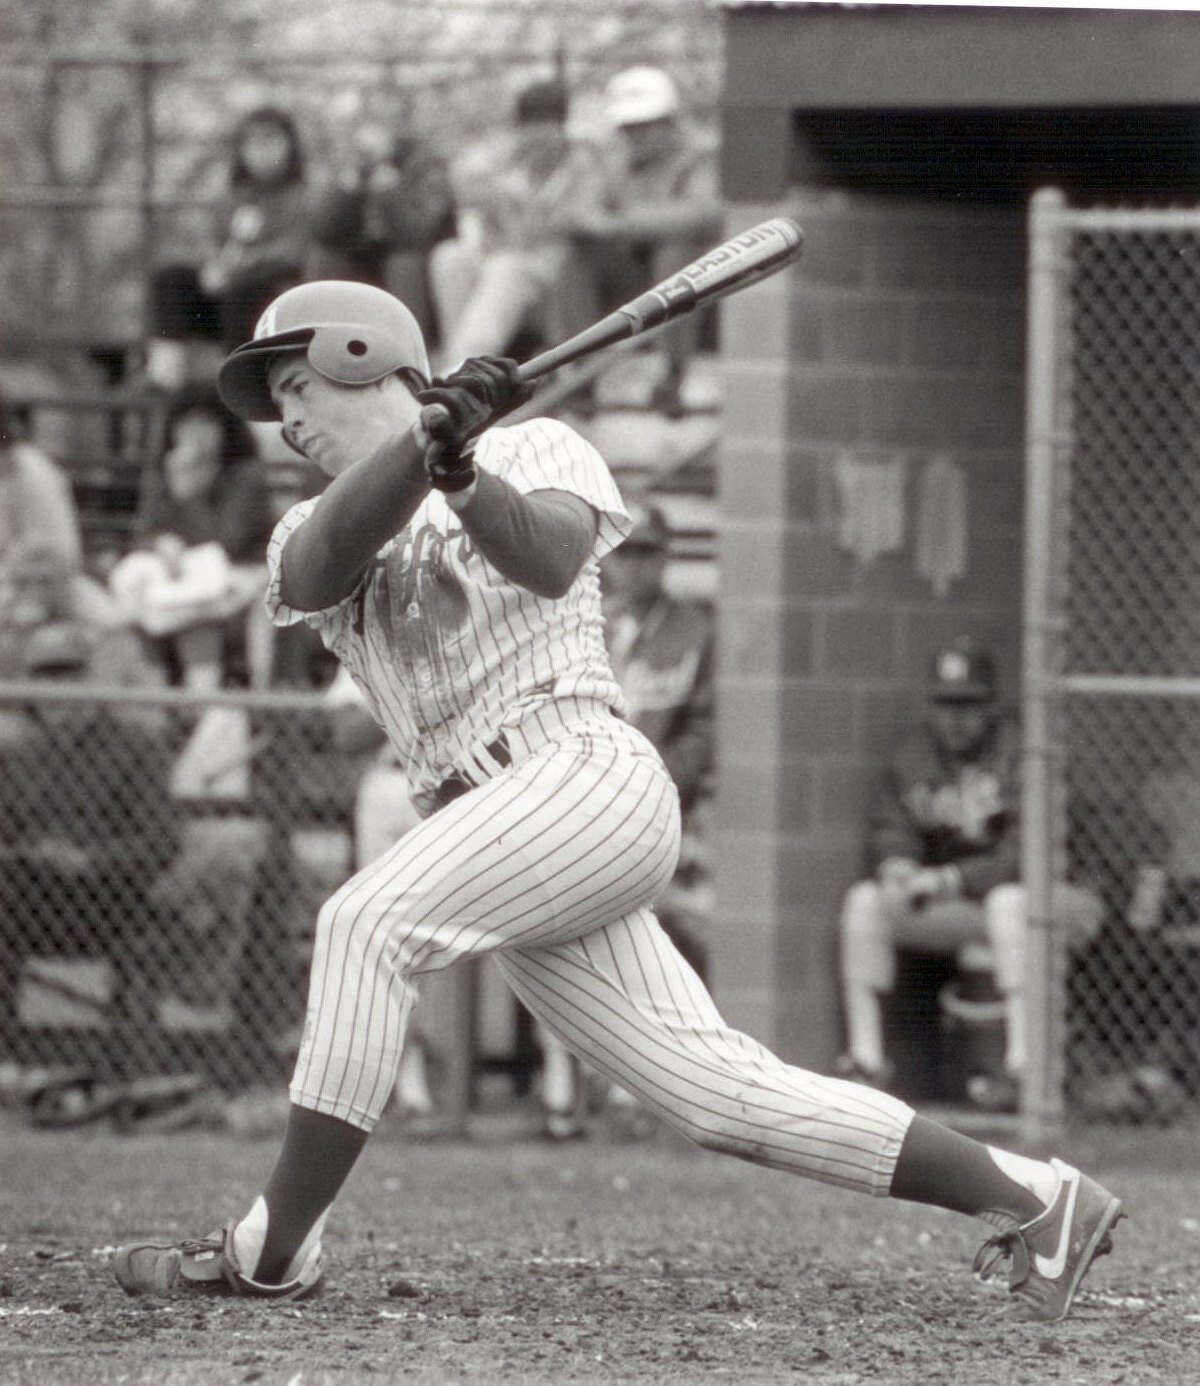 Over the course of his three seasons at the University of Hartford, Jeff Bagwell hit .413 with 31 home runs and 126 RBIs.